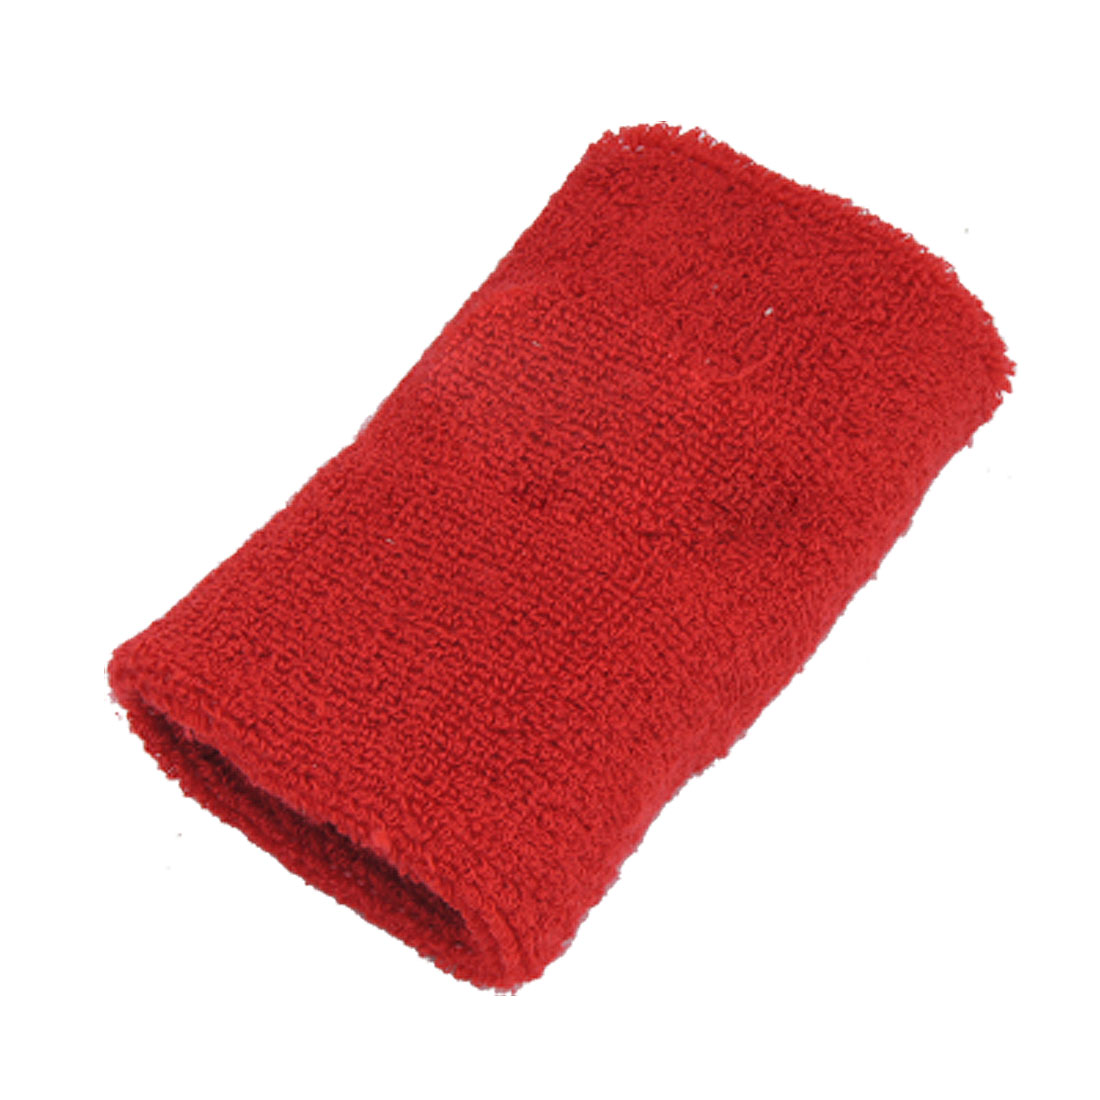 Athletic Red Stretchy Fabric Protector Support Wrist Band